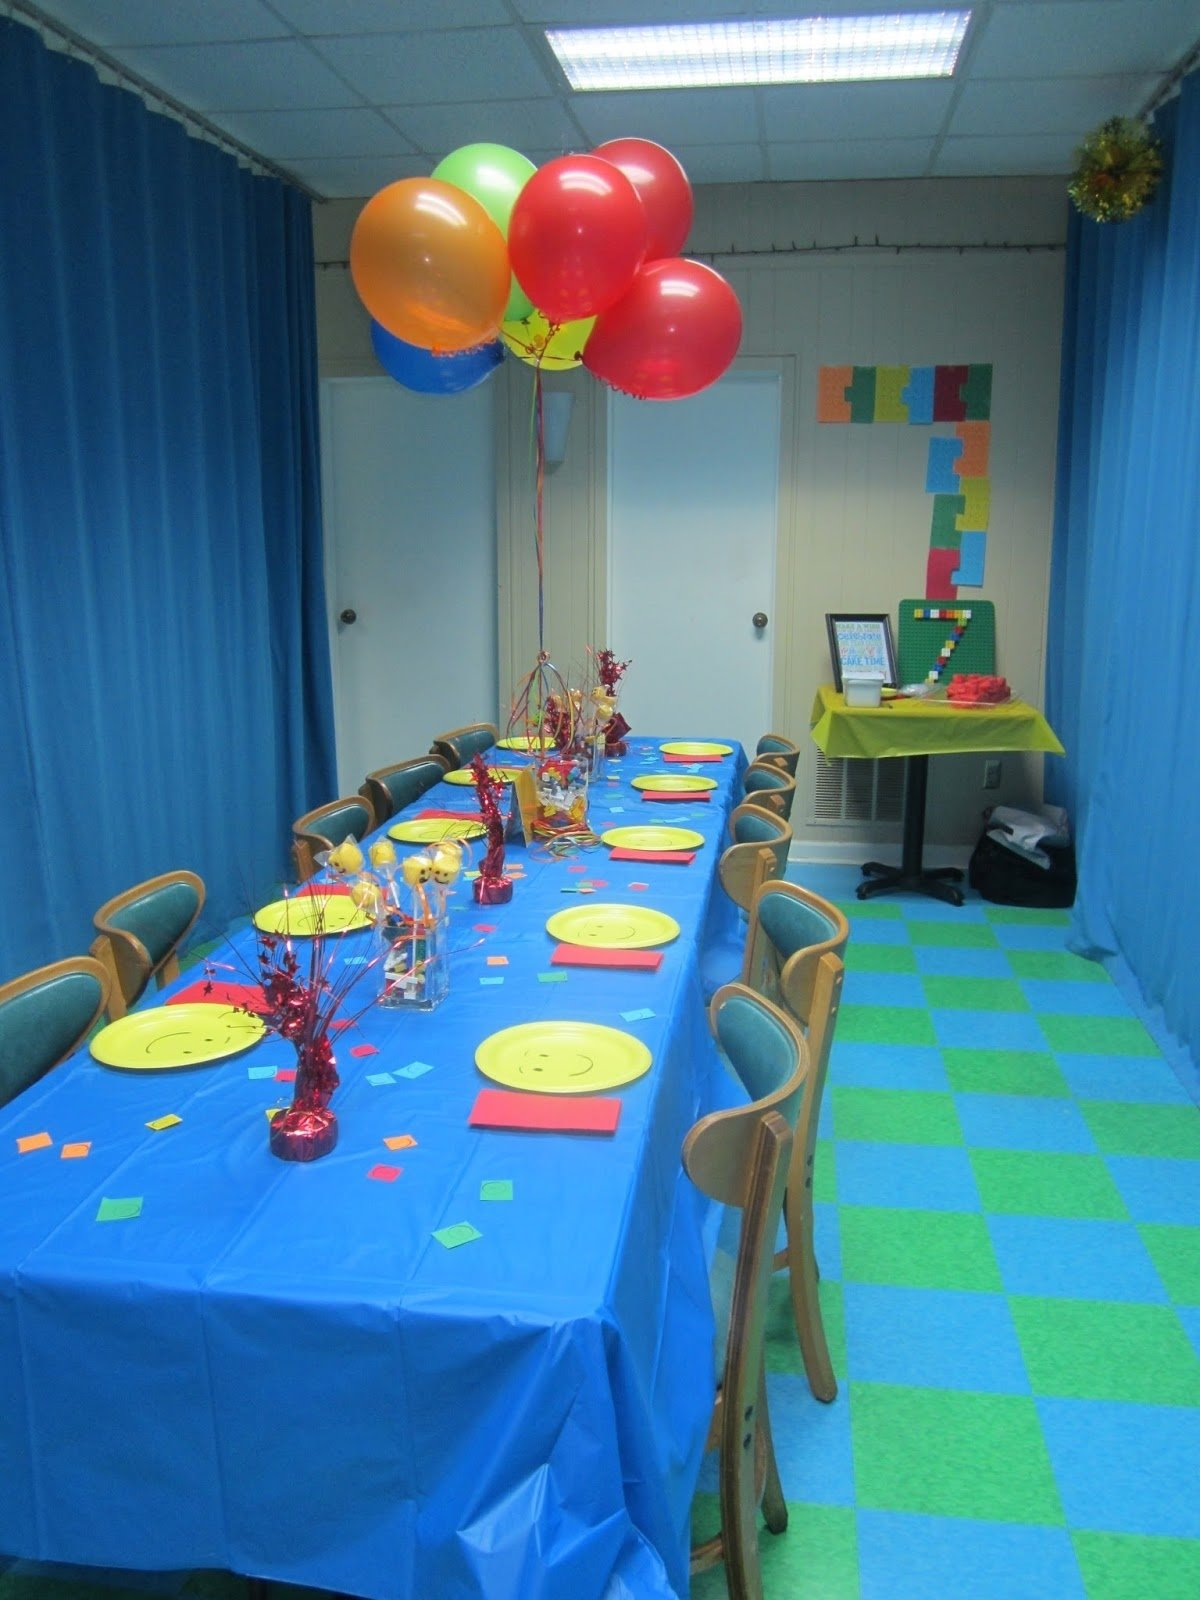 10 Famous Birthday Party Ideas For 13 Year Old Boys cute year birthday party ideas entertainment ideas for visit 37